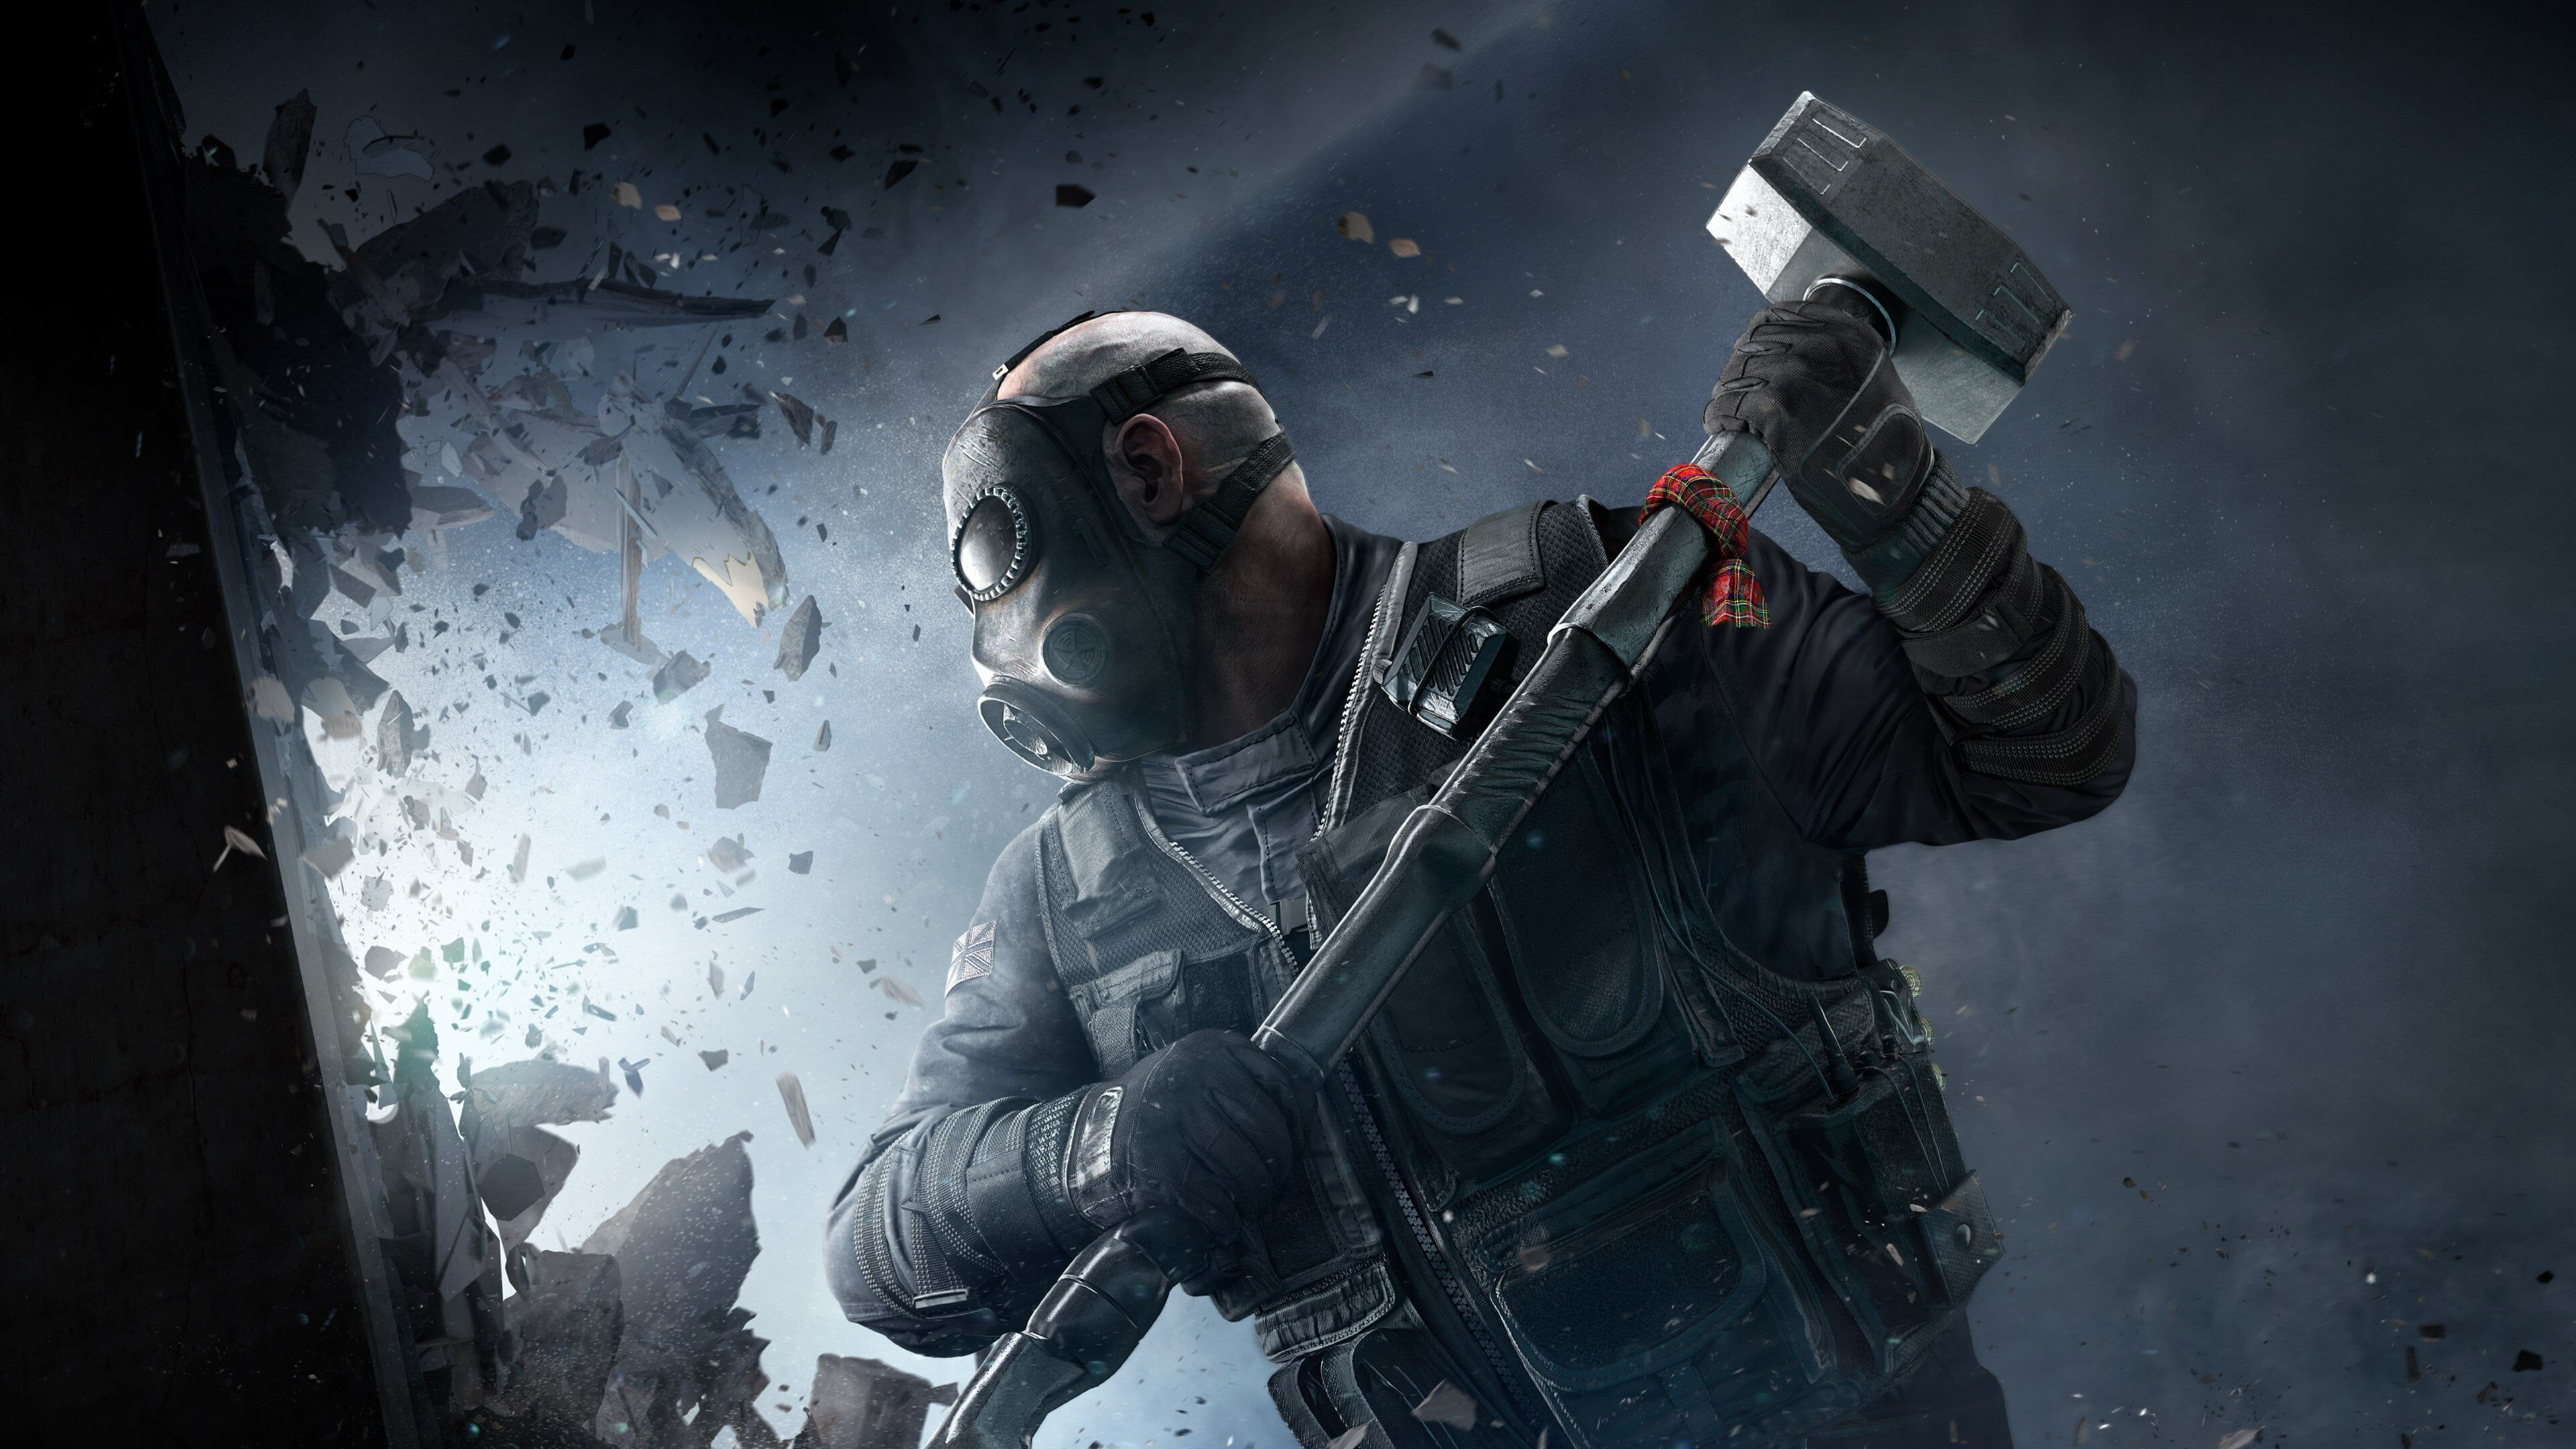 Video Game Tom Clancy S Rainbow Six Siege Hammer Sledge Tom Clancy S Rainbow Six Siege 4k Wallpaper Hdwallp In 2020 Tom Clancy S Rainbow Six Ubisoft Epic Games